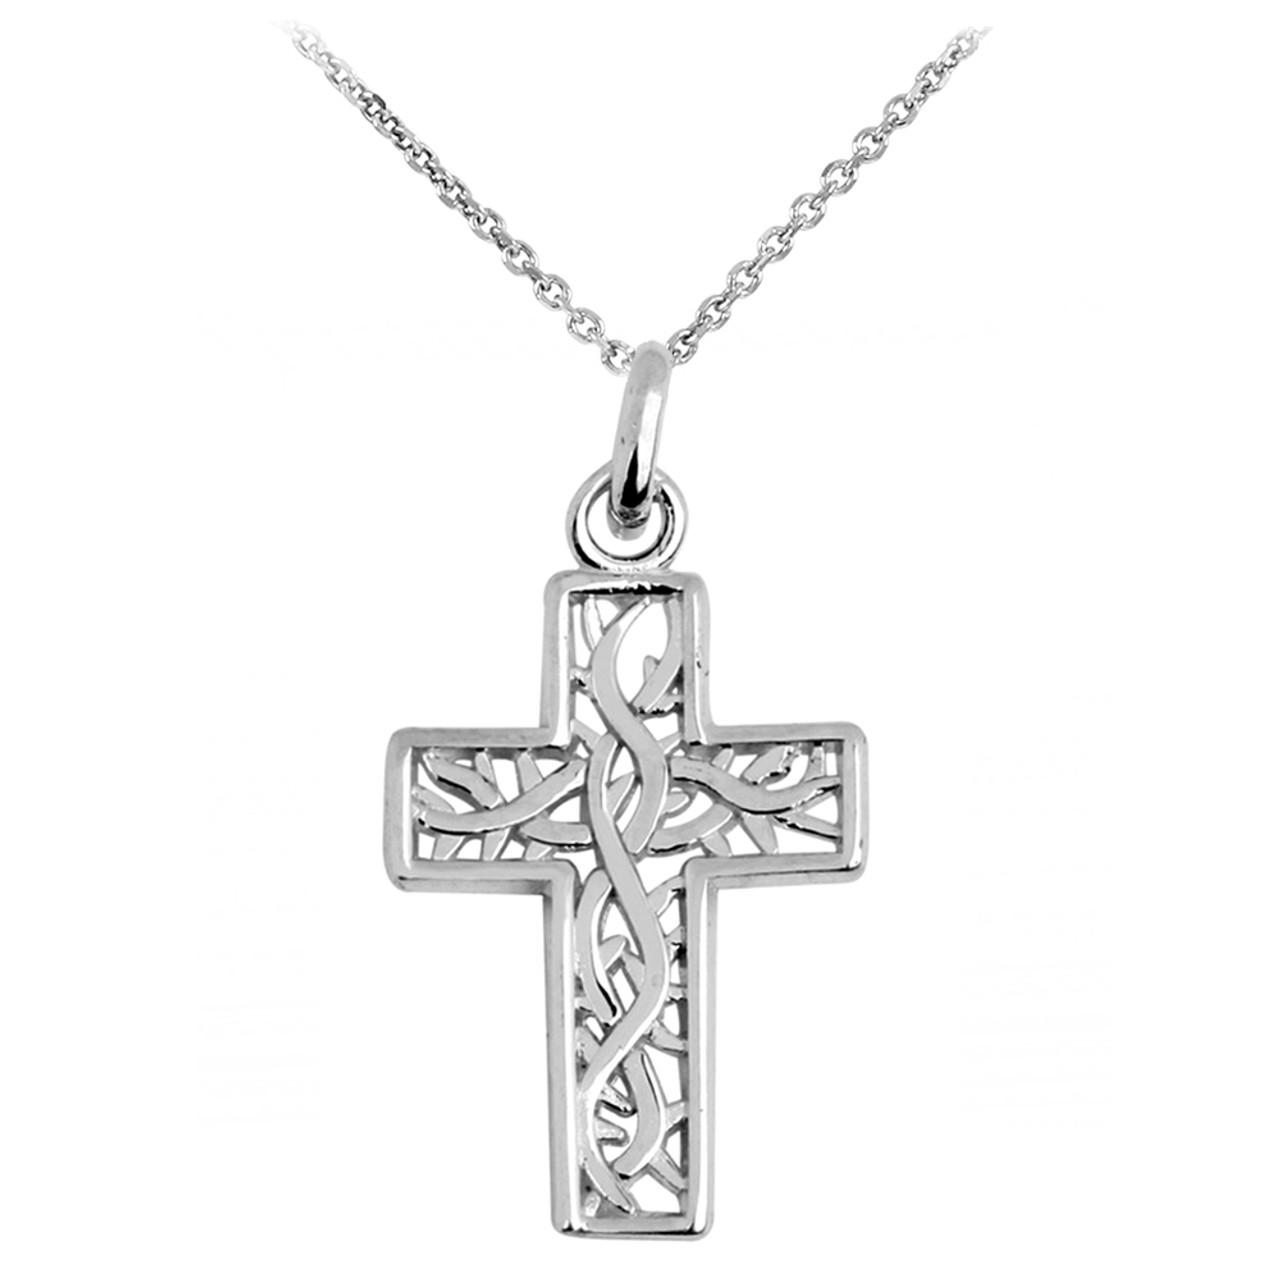 Gold celtic irish trinity cross pendant necklace white gold celtic irish trinity cross pendant necklace biocorpaavc